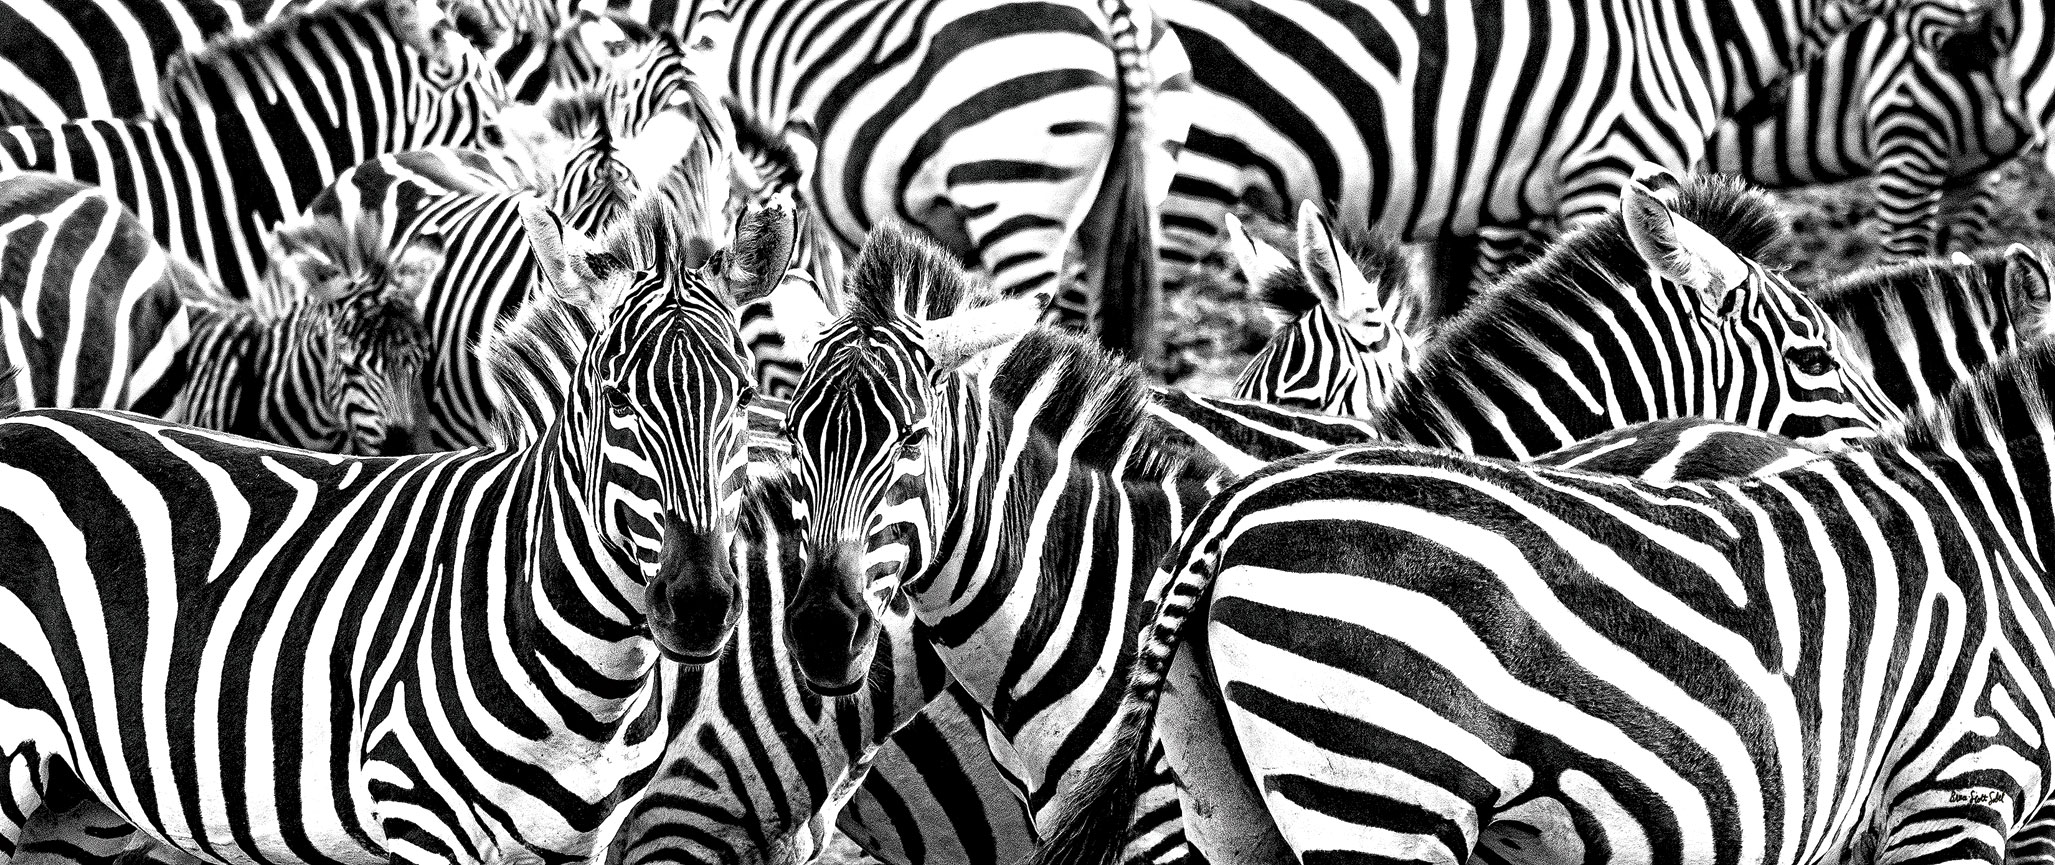 """Dr. Bruce Sobel photographed """"Zillion Zebras"""" at the Mara River in the Serengeti, Tanzania, in December 2019"""